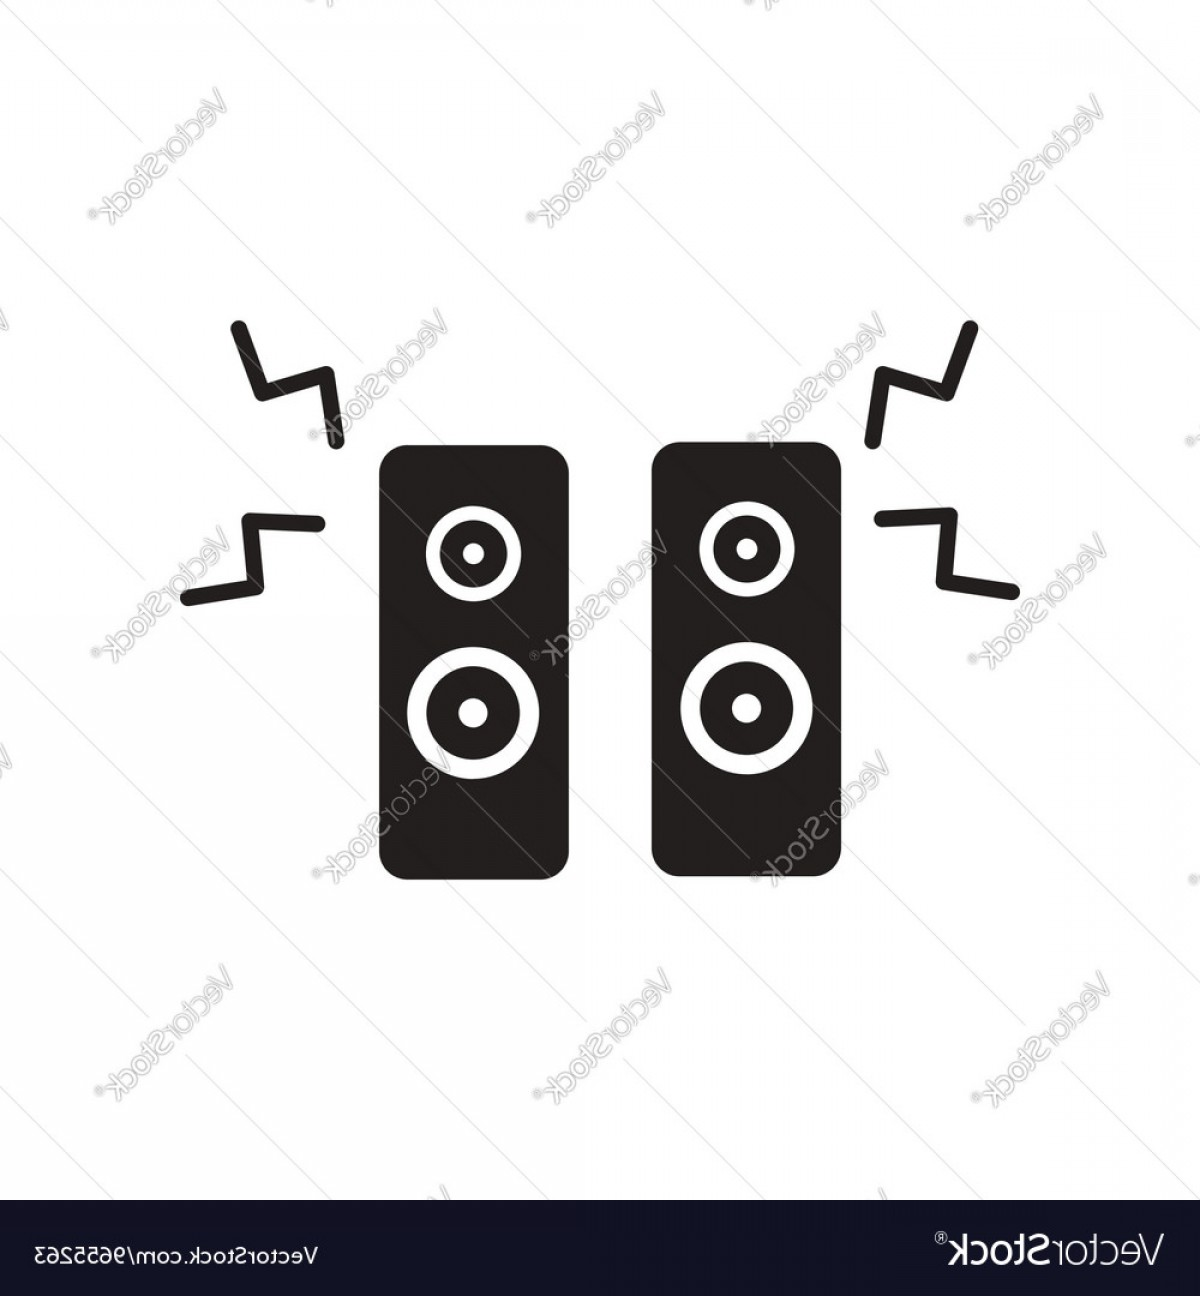 Speakers Vector Black: Flat Icon In Black And White Style Music Speakers Vector